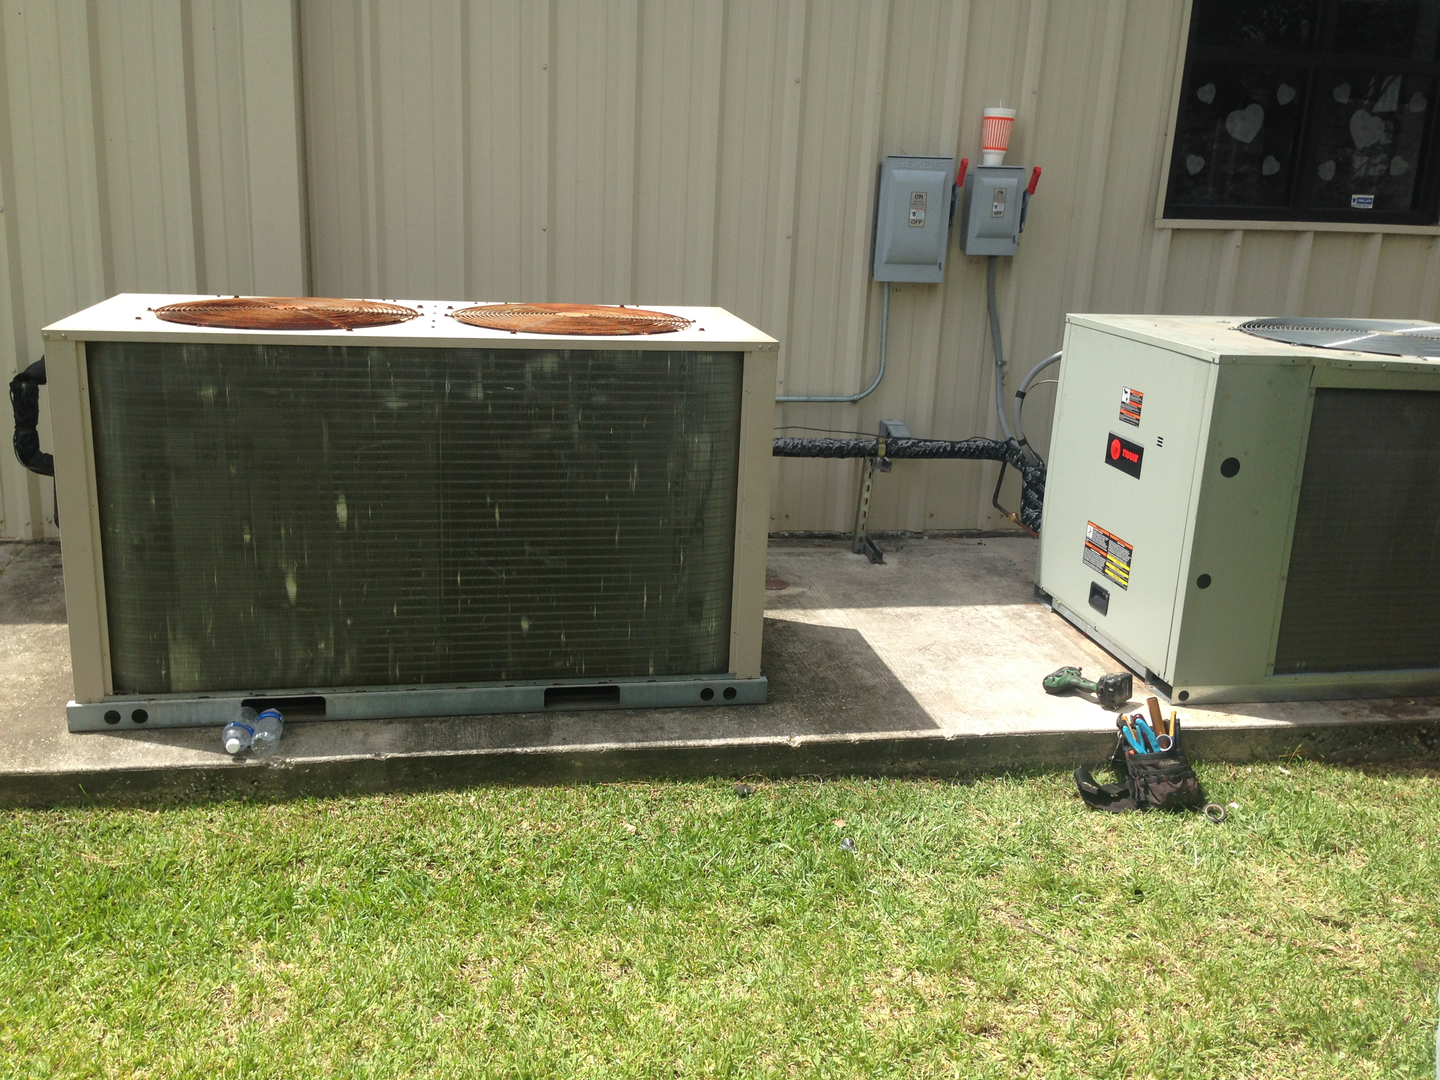 hvac services - expo heating & cooling inc in spring tx 77379